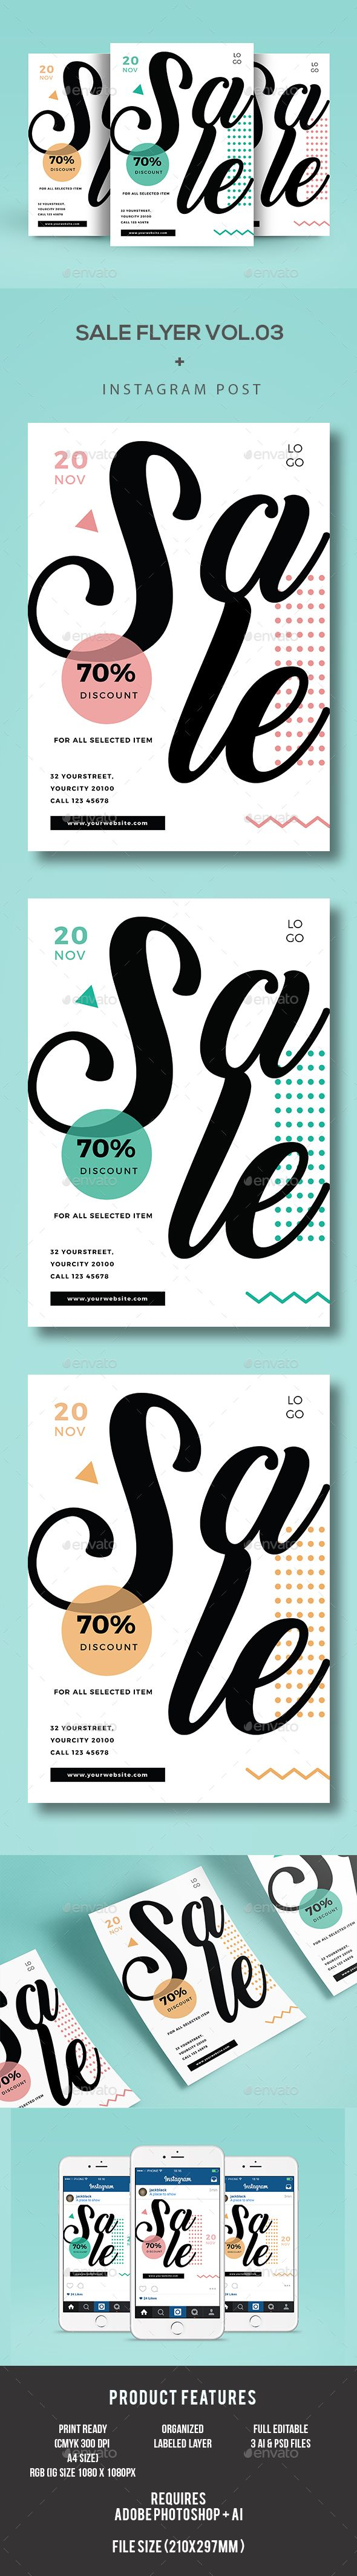 Sale Flyer  — PSD Template #winter sale #geometric • Download ➝ https://graphicriver.net/item/sale-flyer/18261860?ref=pxcr